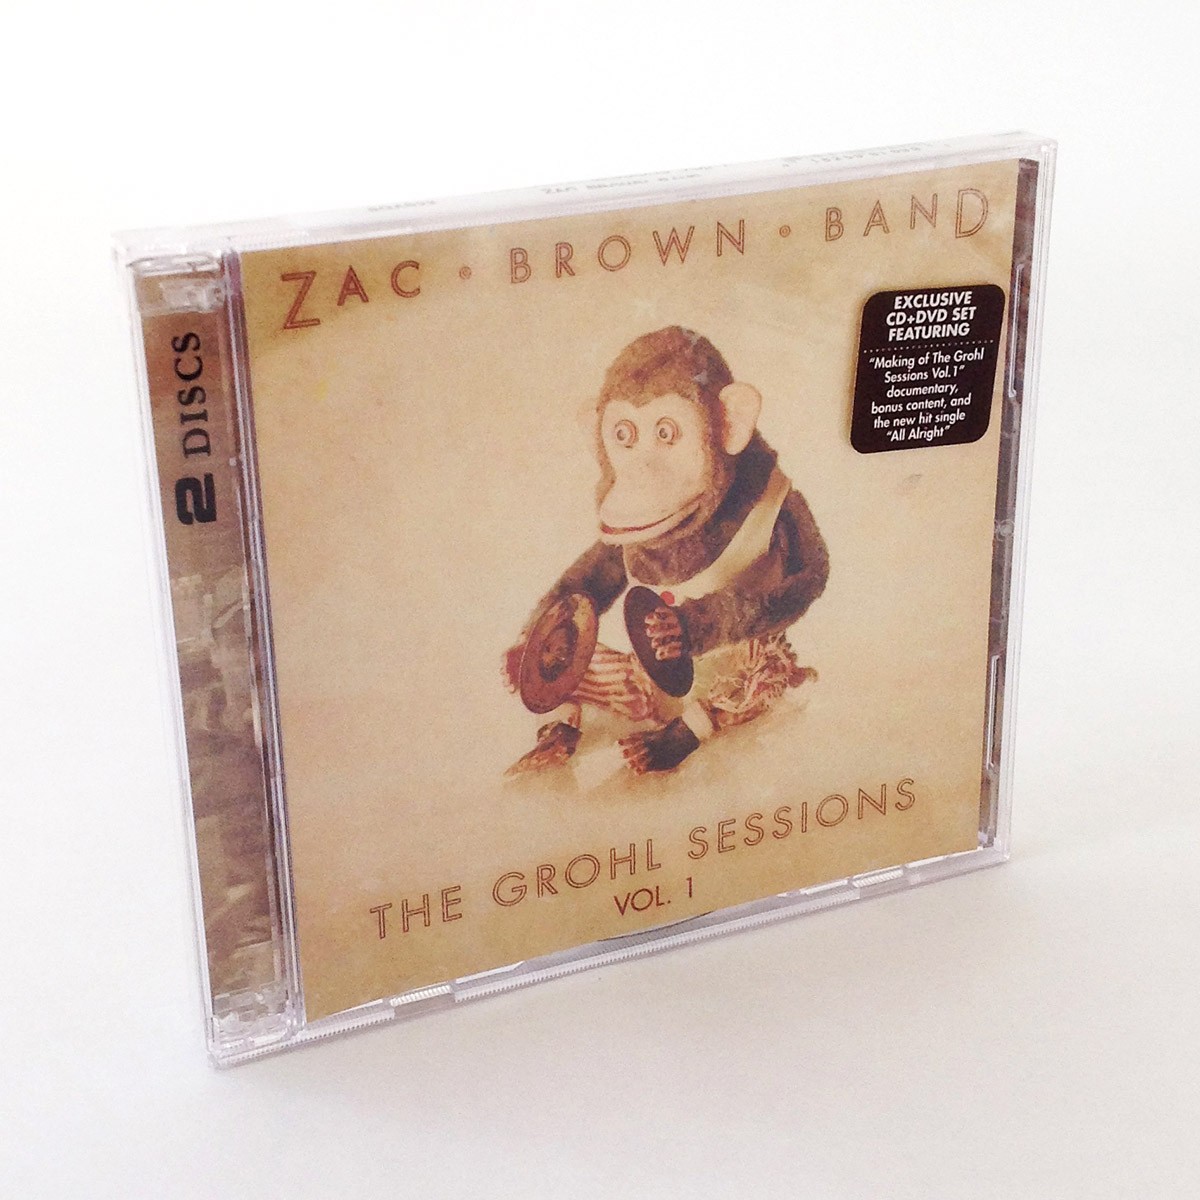 Zac Brown Band Double CD Jewel Case